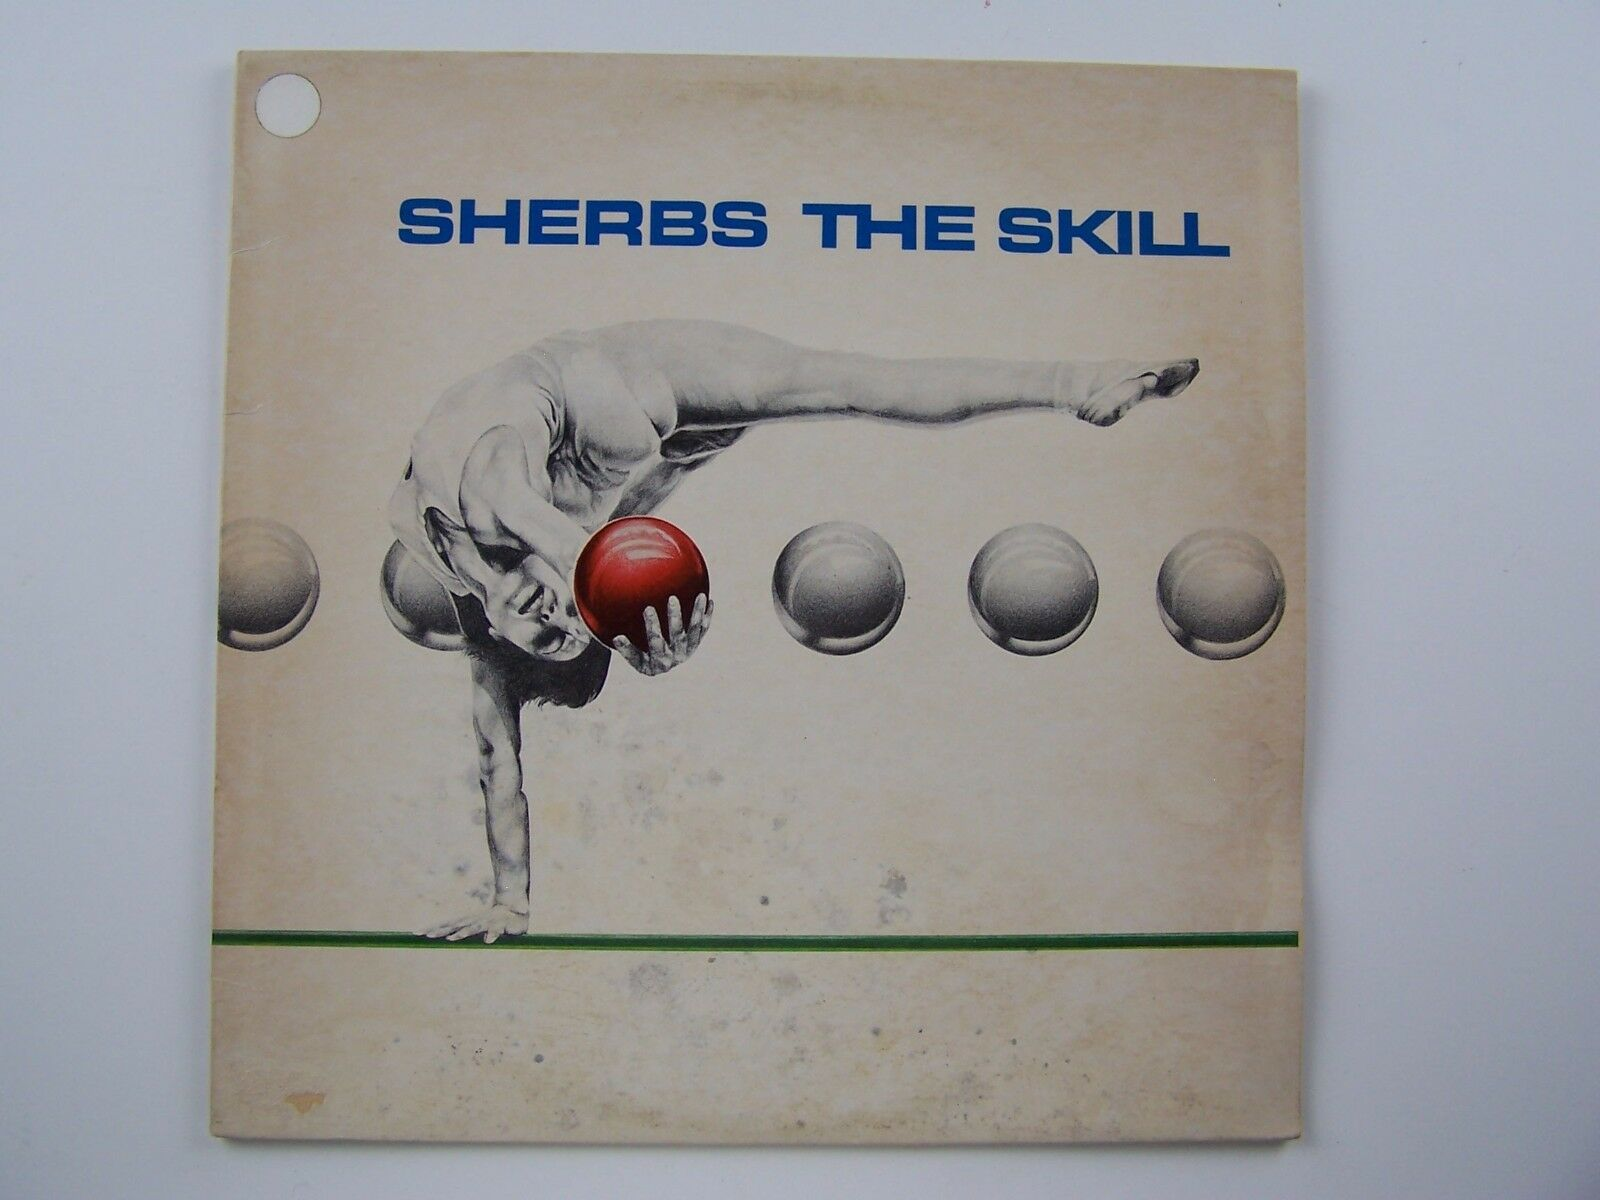 Sherbs - The Skill Vinyl LP Record Album SD 38-137